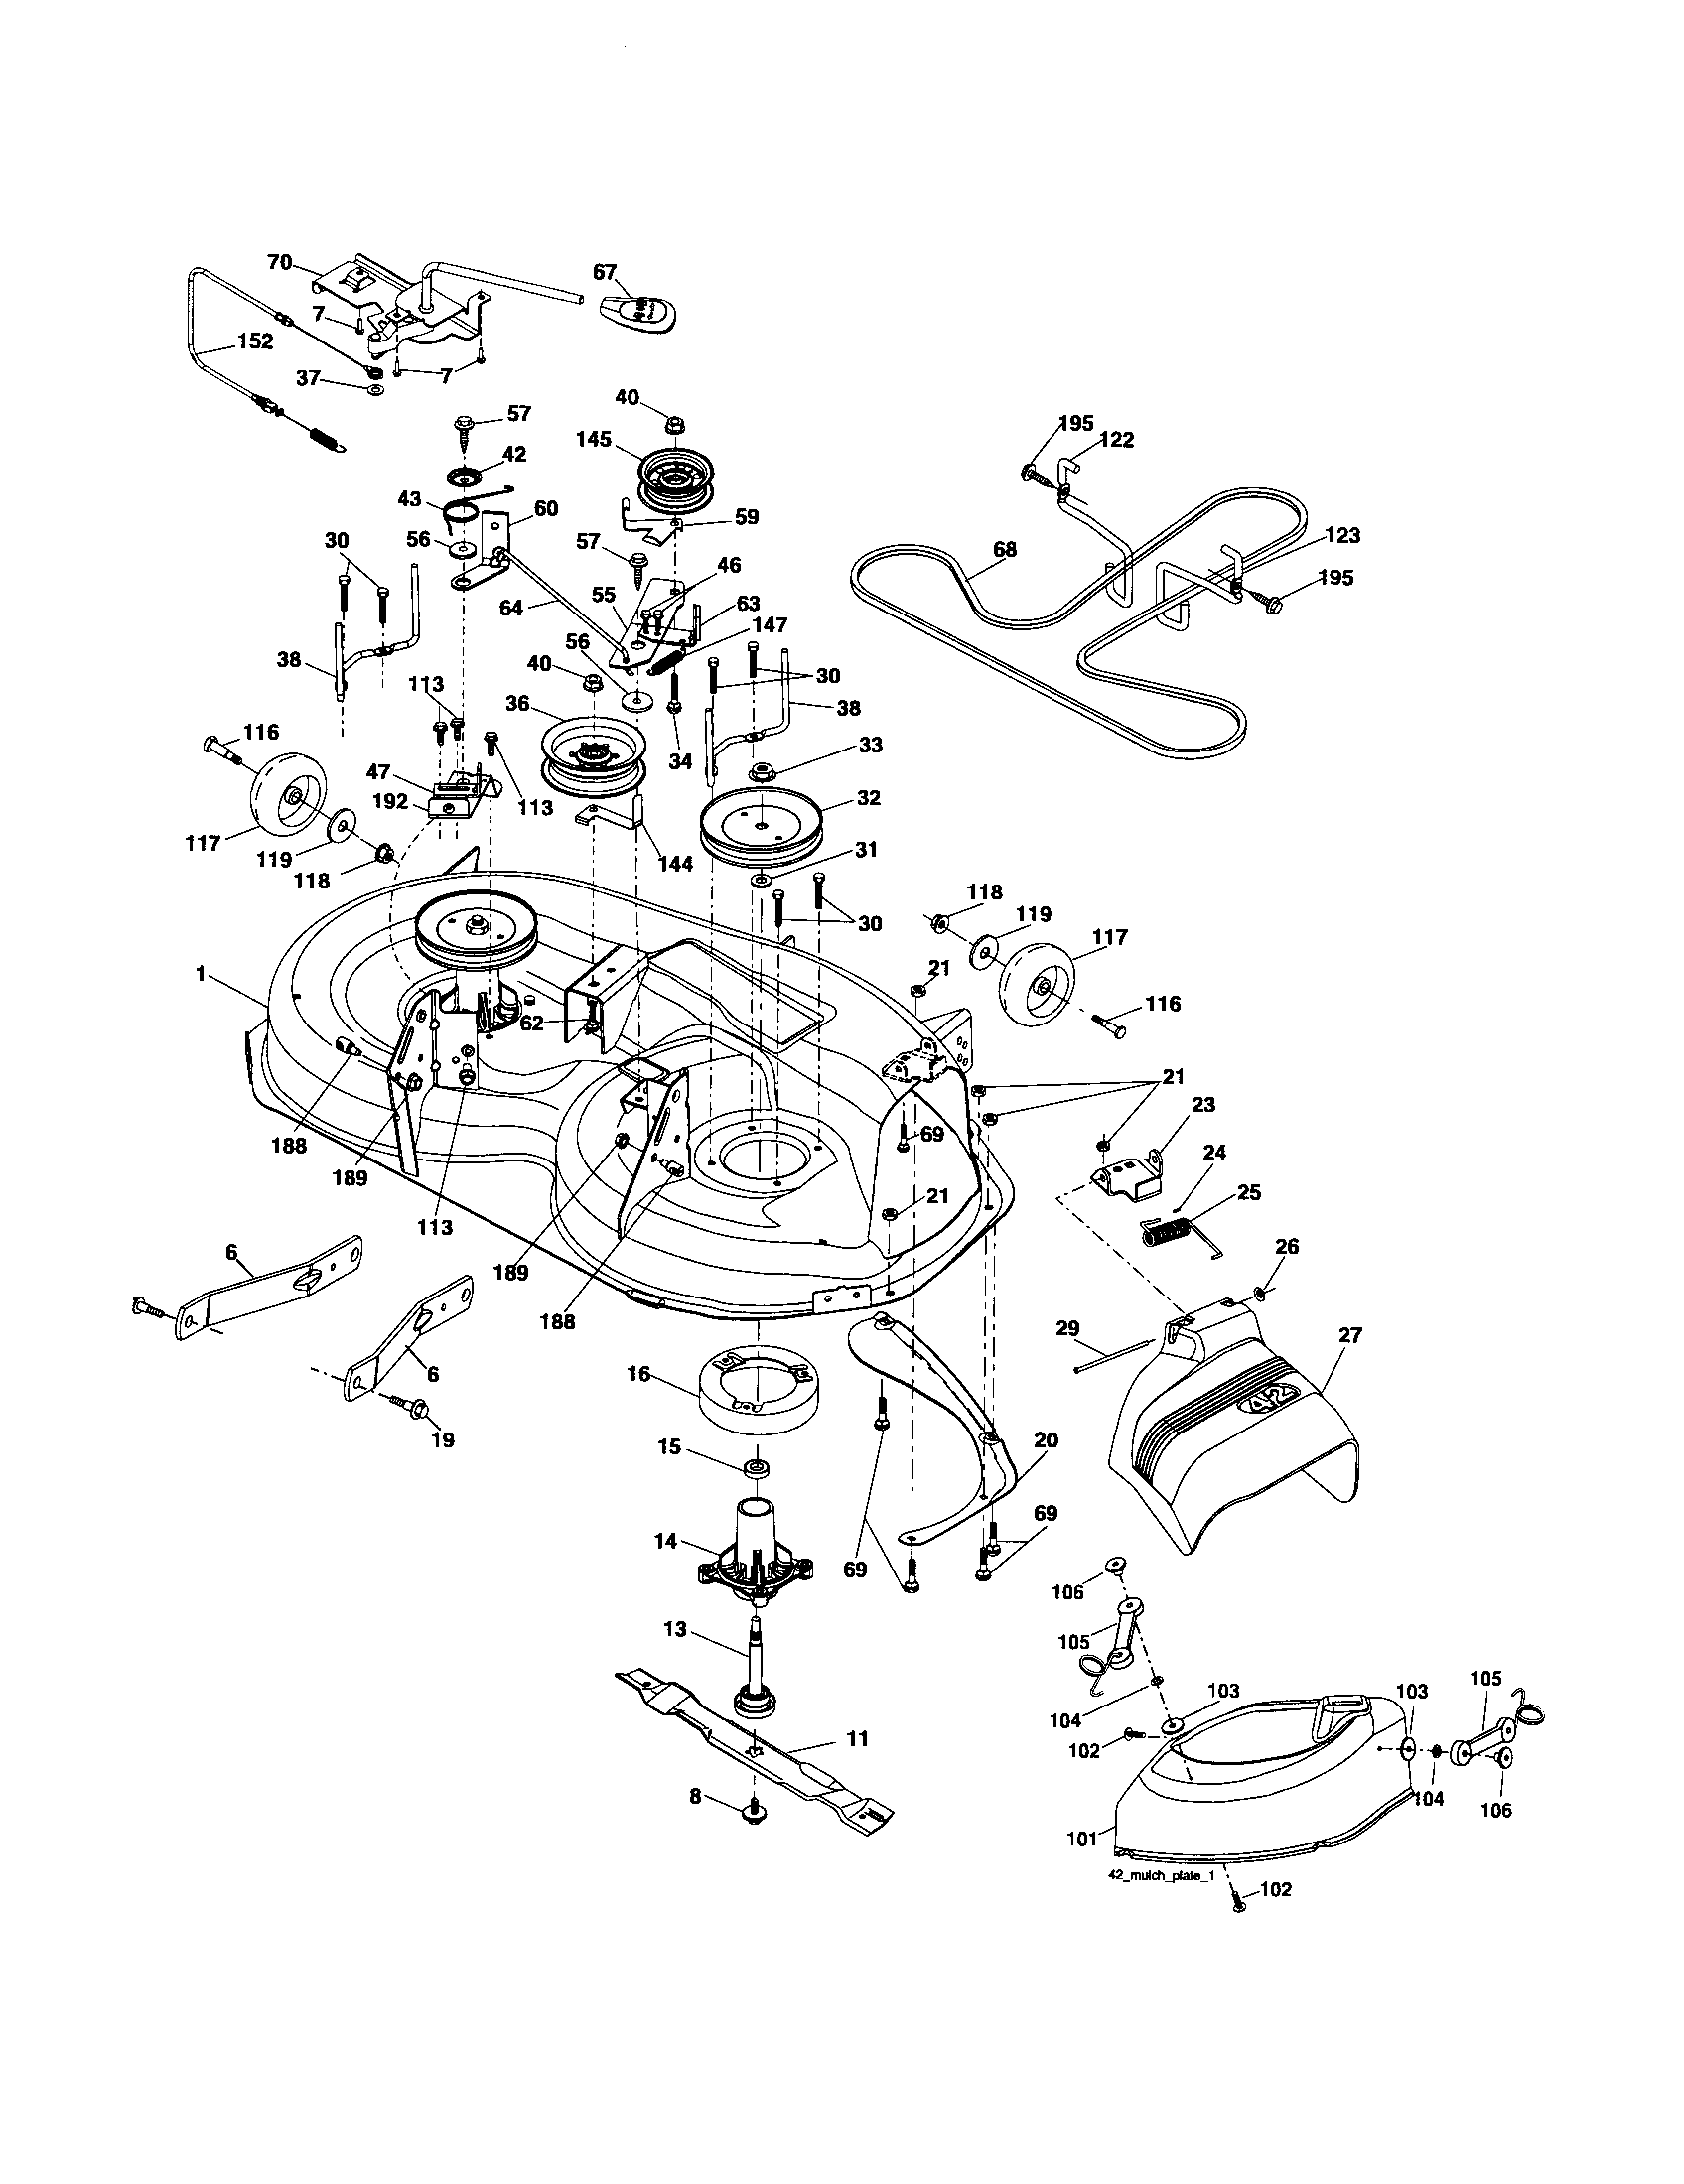 Poulan Pro Riding Lawn Mower Parts Diagram, Poulan, Free